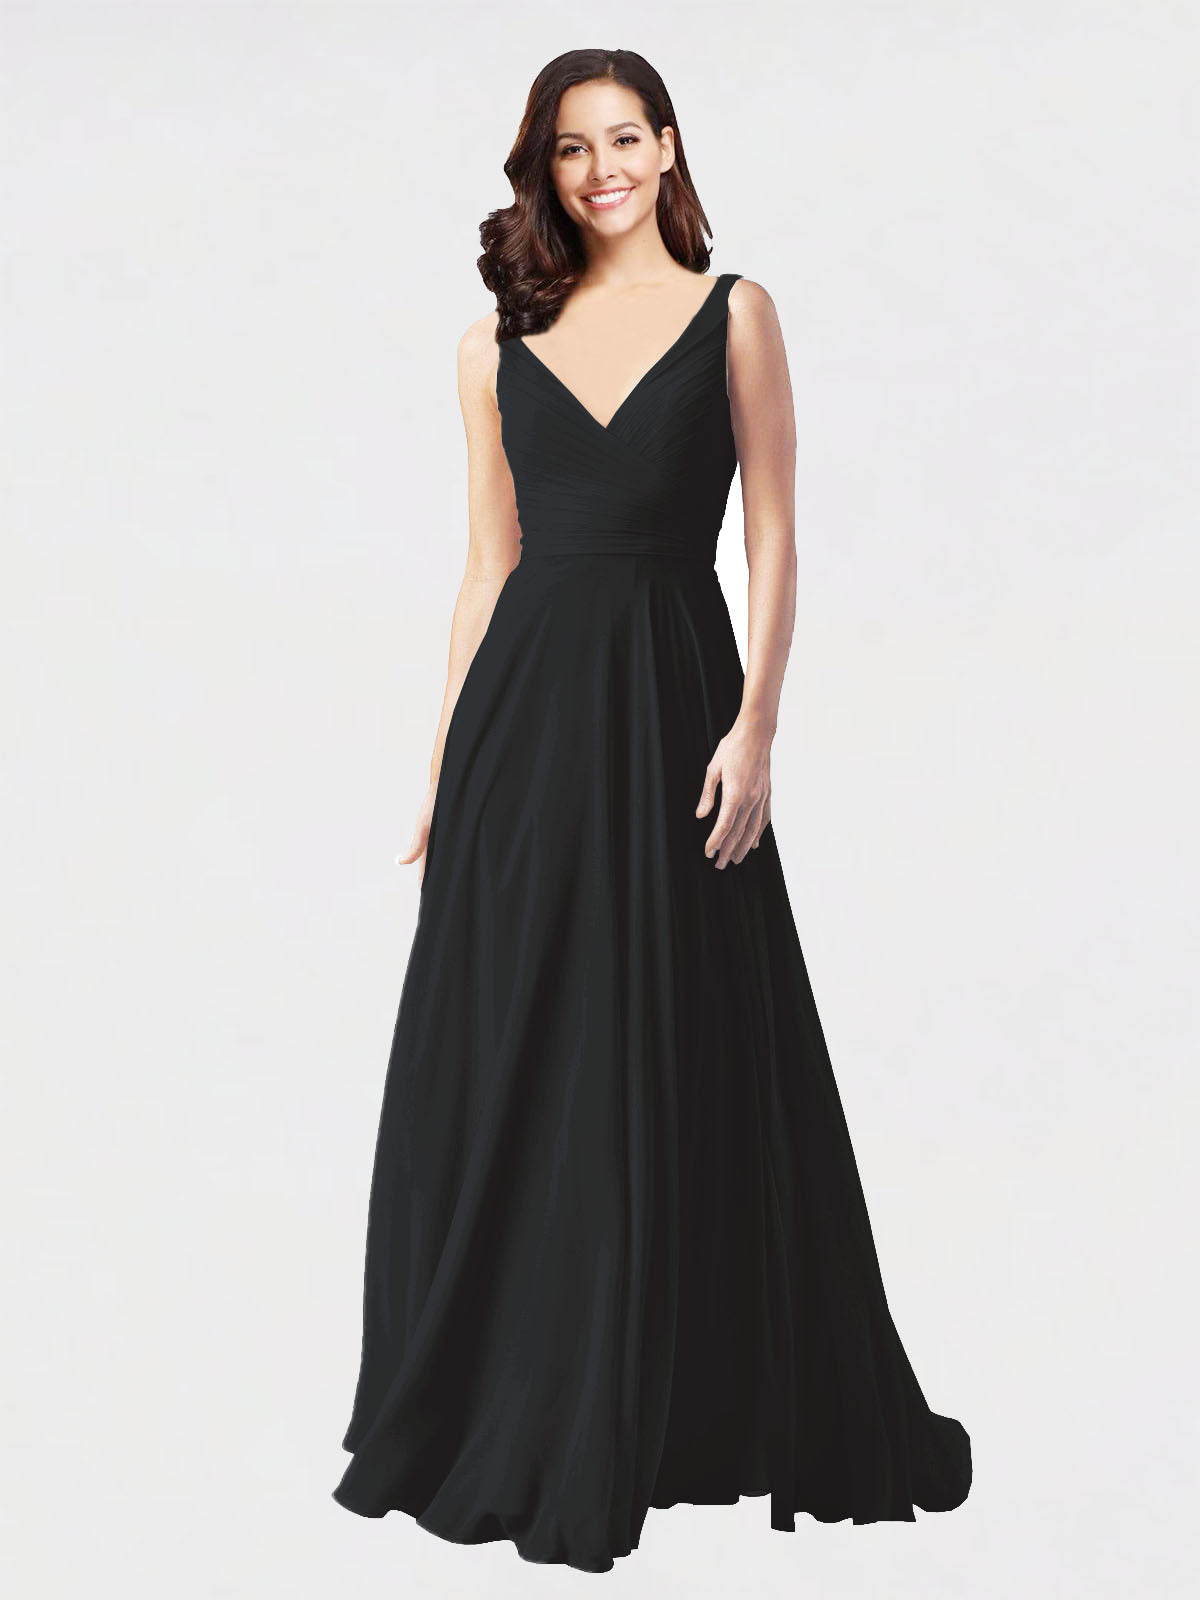 Long A-Line V-Neck Sleeveless Black Chiffon Bridesmaid Dress Bernice